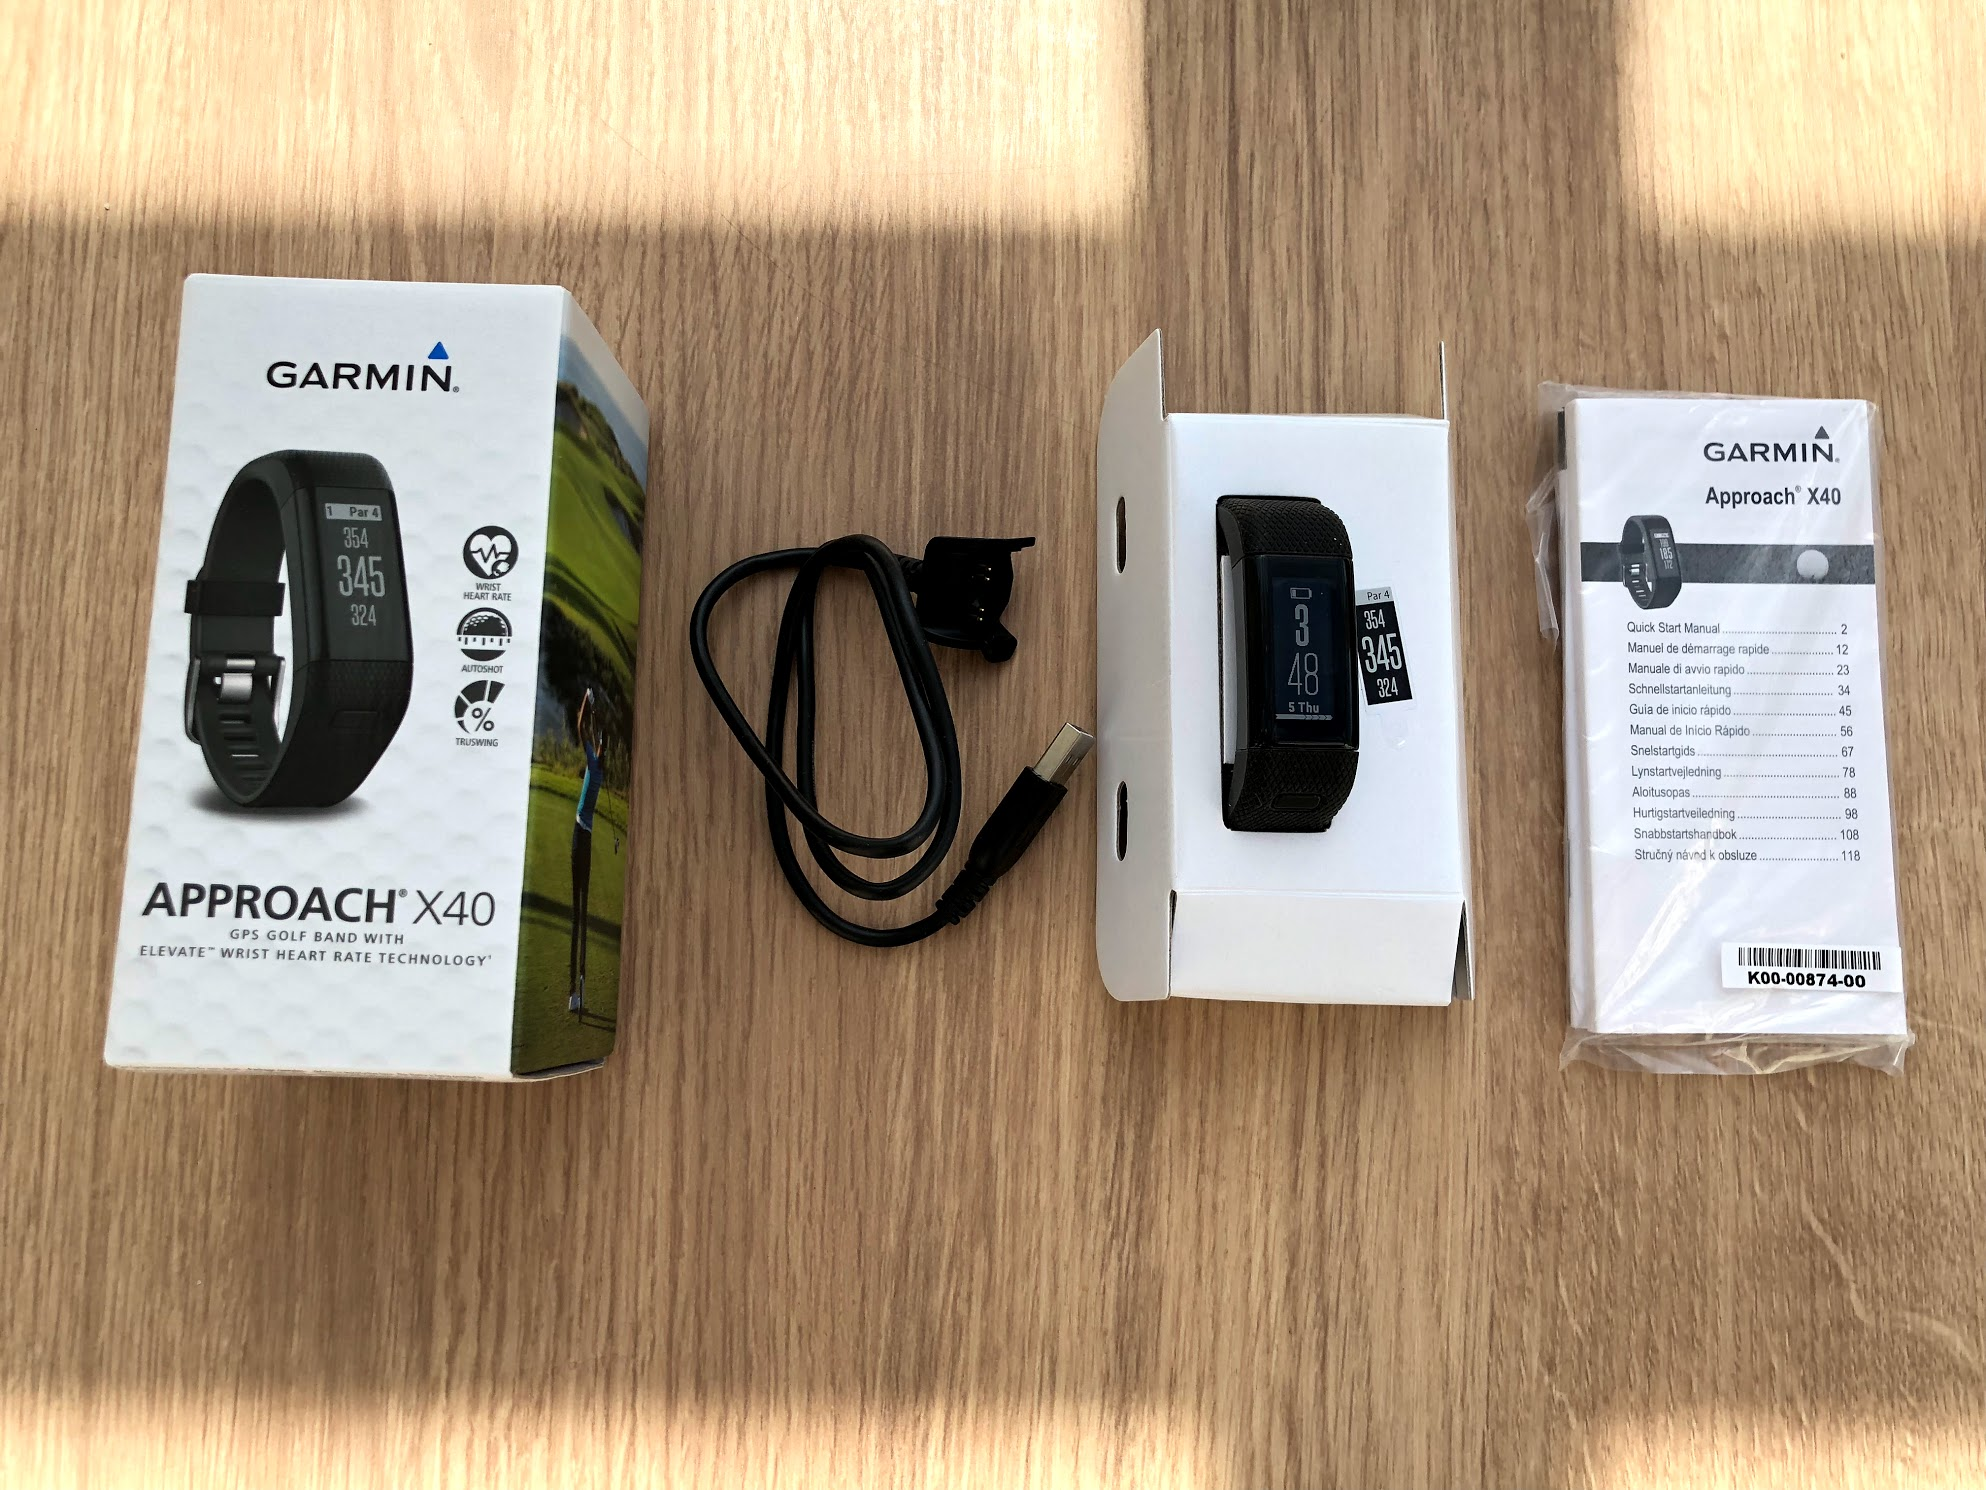 Garmin Approach X40 – Golf GPS Golf Band and multi sport 'Fitbit